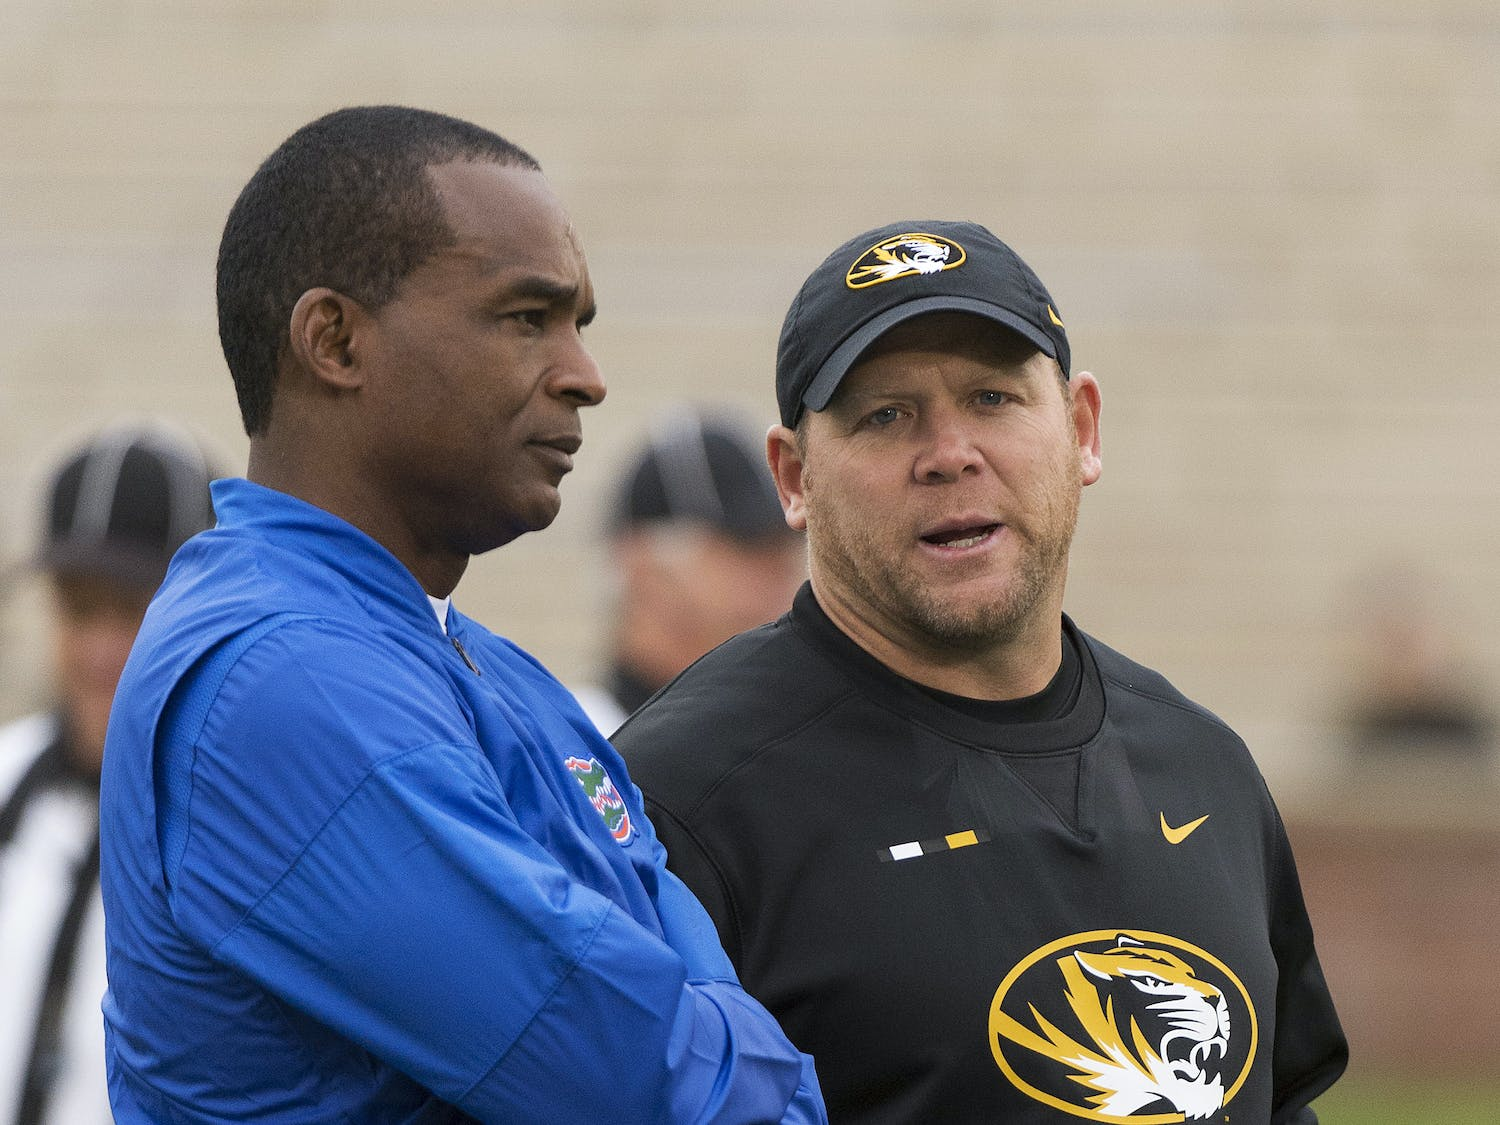 Missouri head coach Barry Odom, right, talks with Florida head coach Randy Shannon, left, before the start of an NCAA college football game Saturday, Nov. 4, 2017, in Columbia, Mo. (AP Photo/L.G. Patterson)